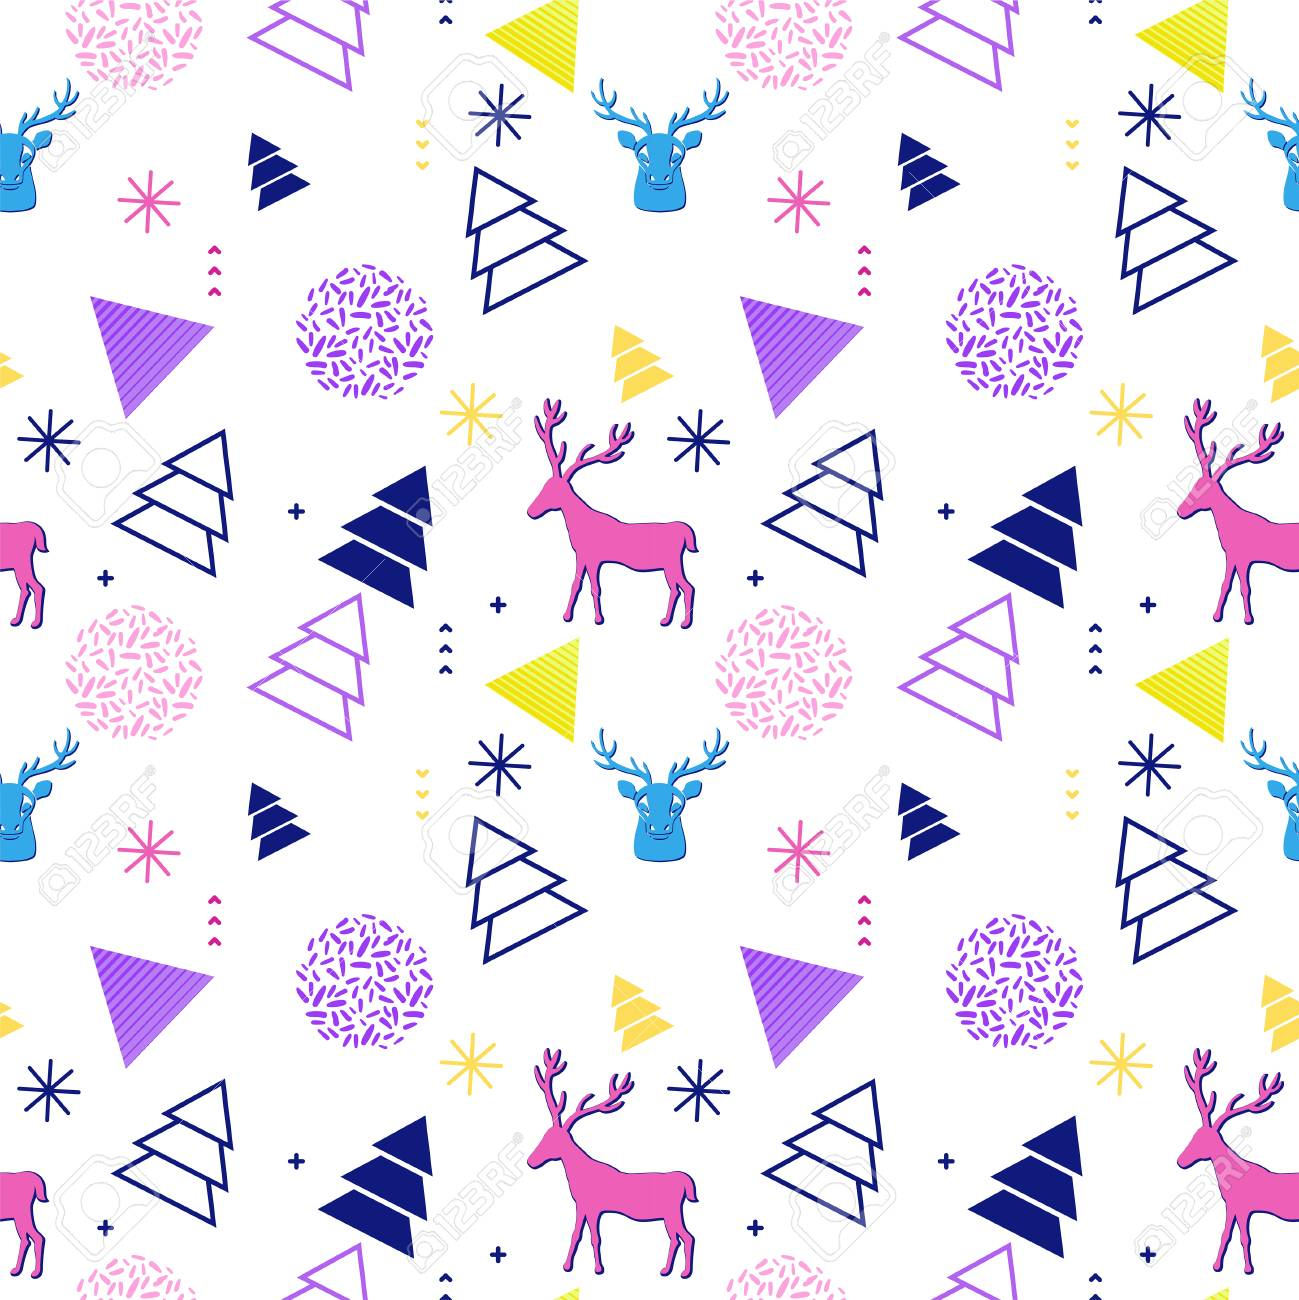 90s Christmas Background.Merry Christmas Geometric Seamless Pattern In Trendy 90s Style